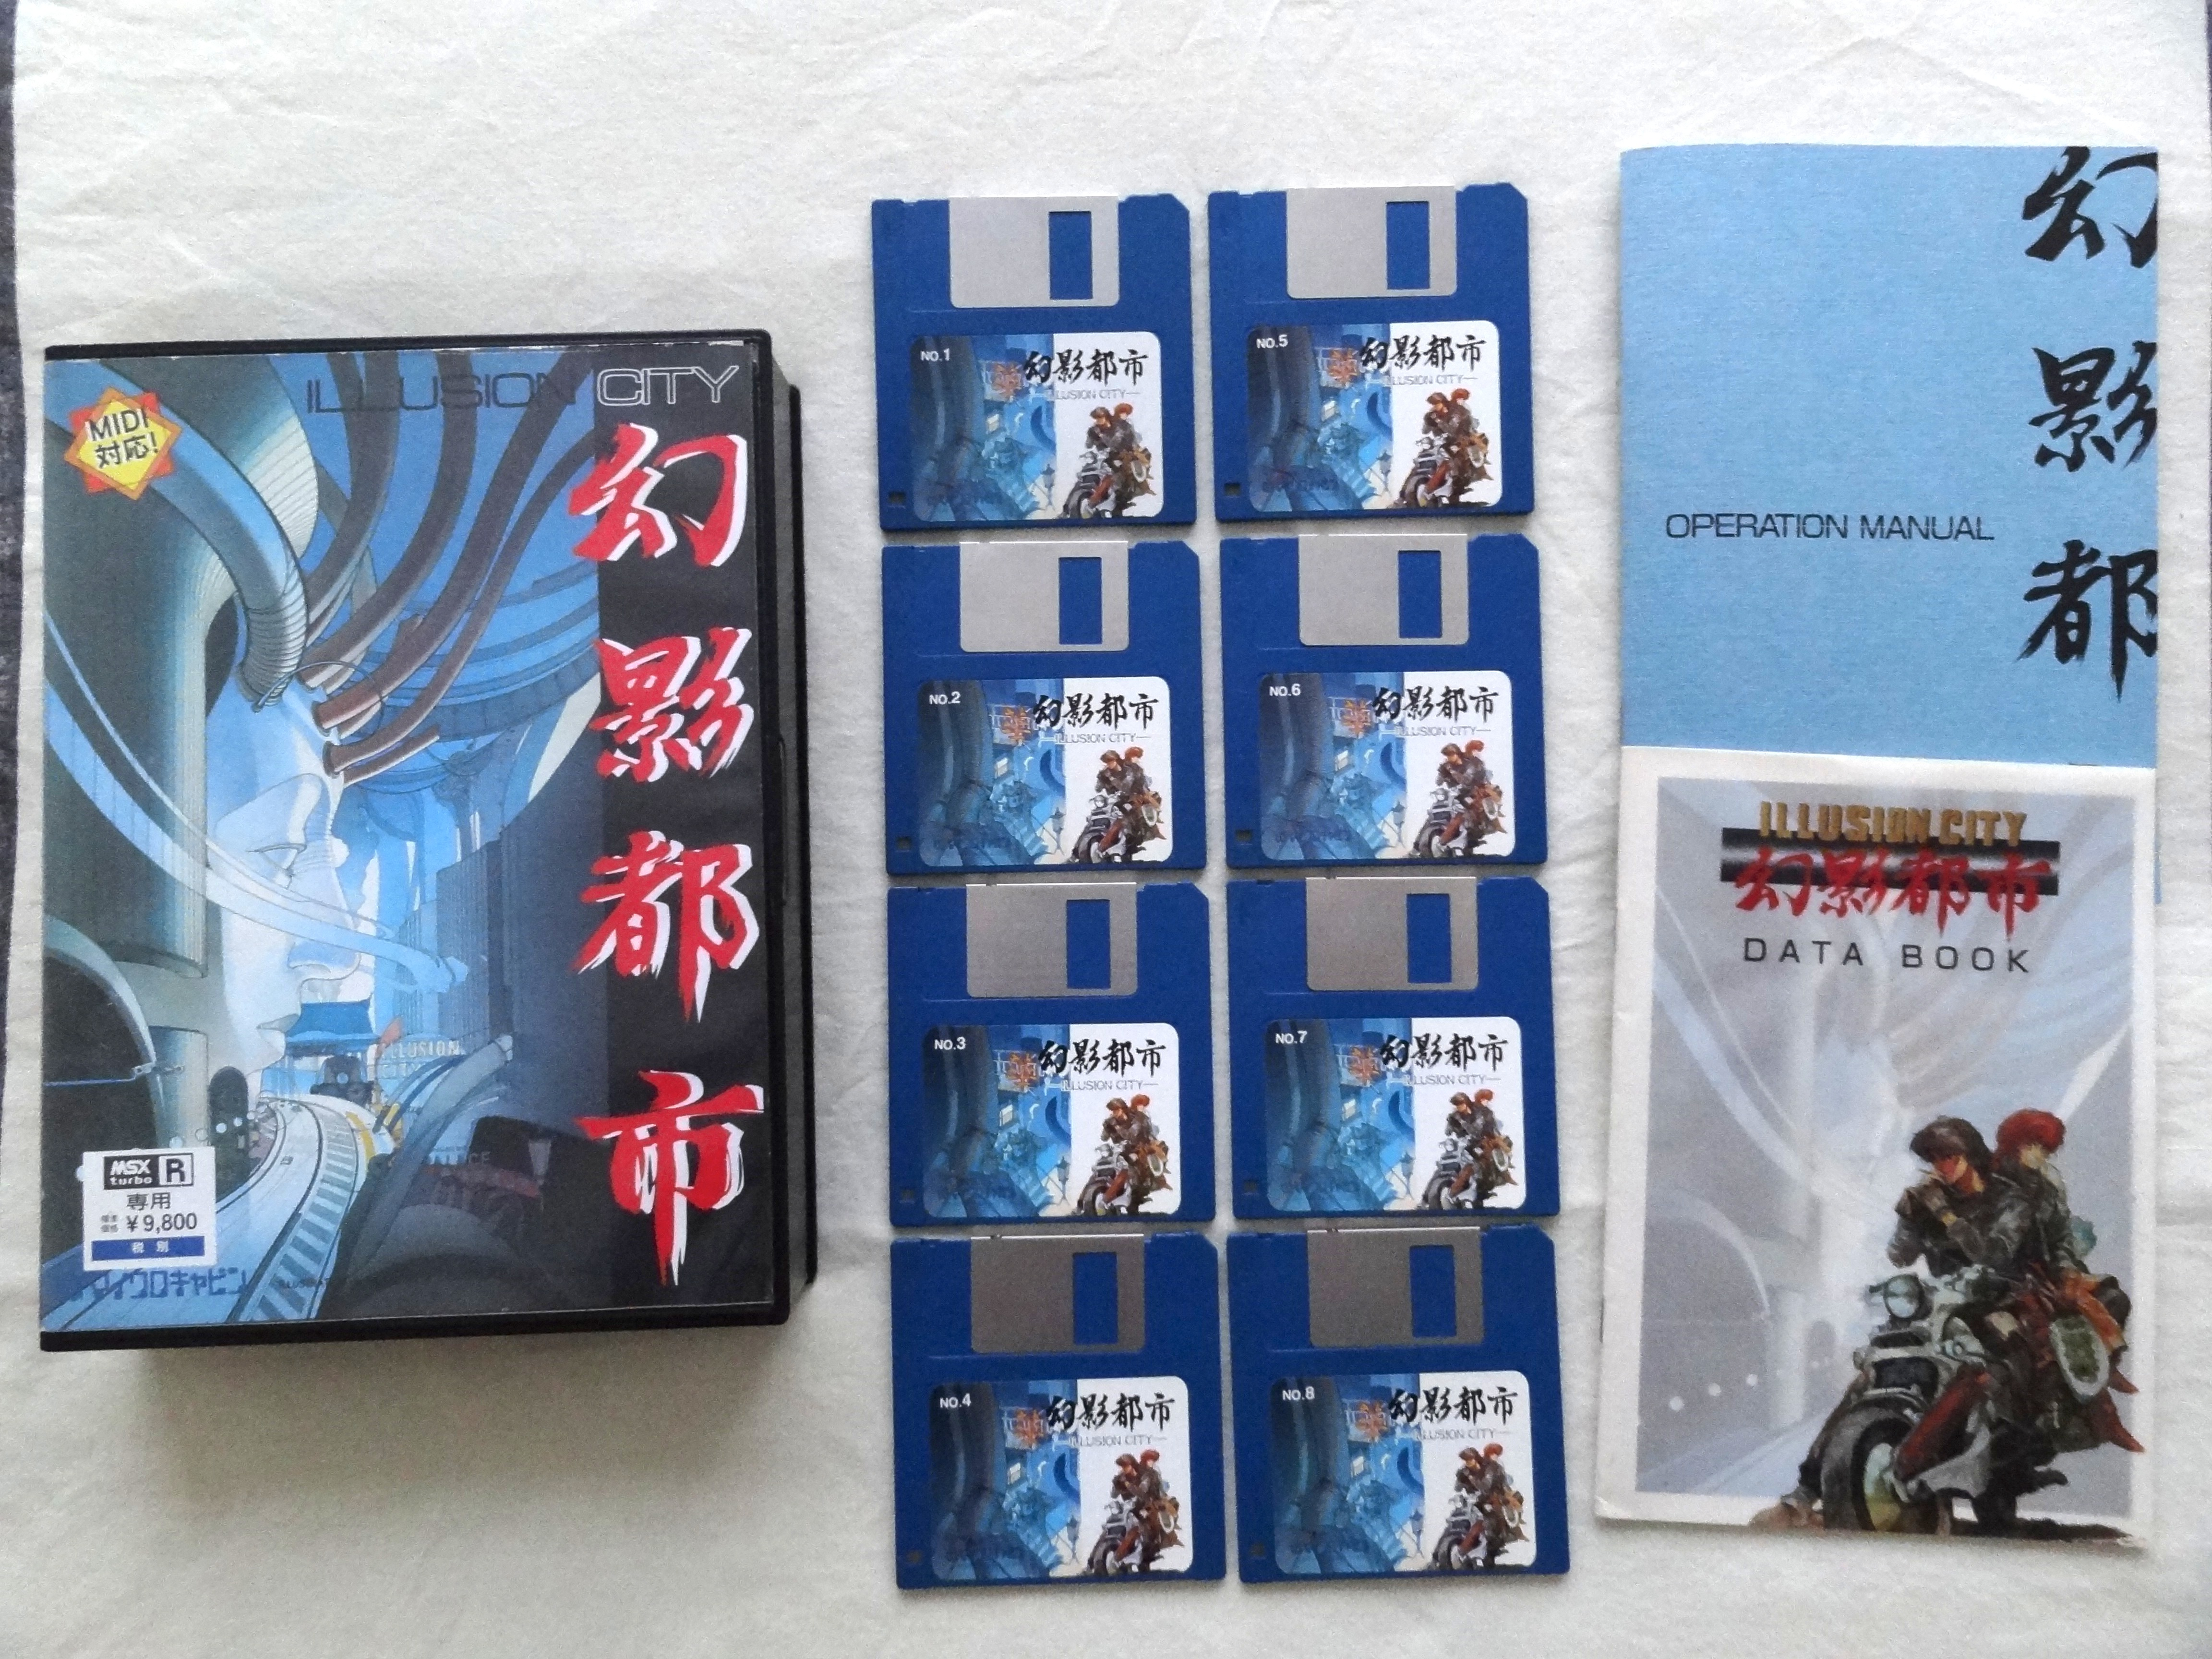 Illusion City Pics, Video Game Collection